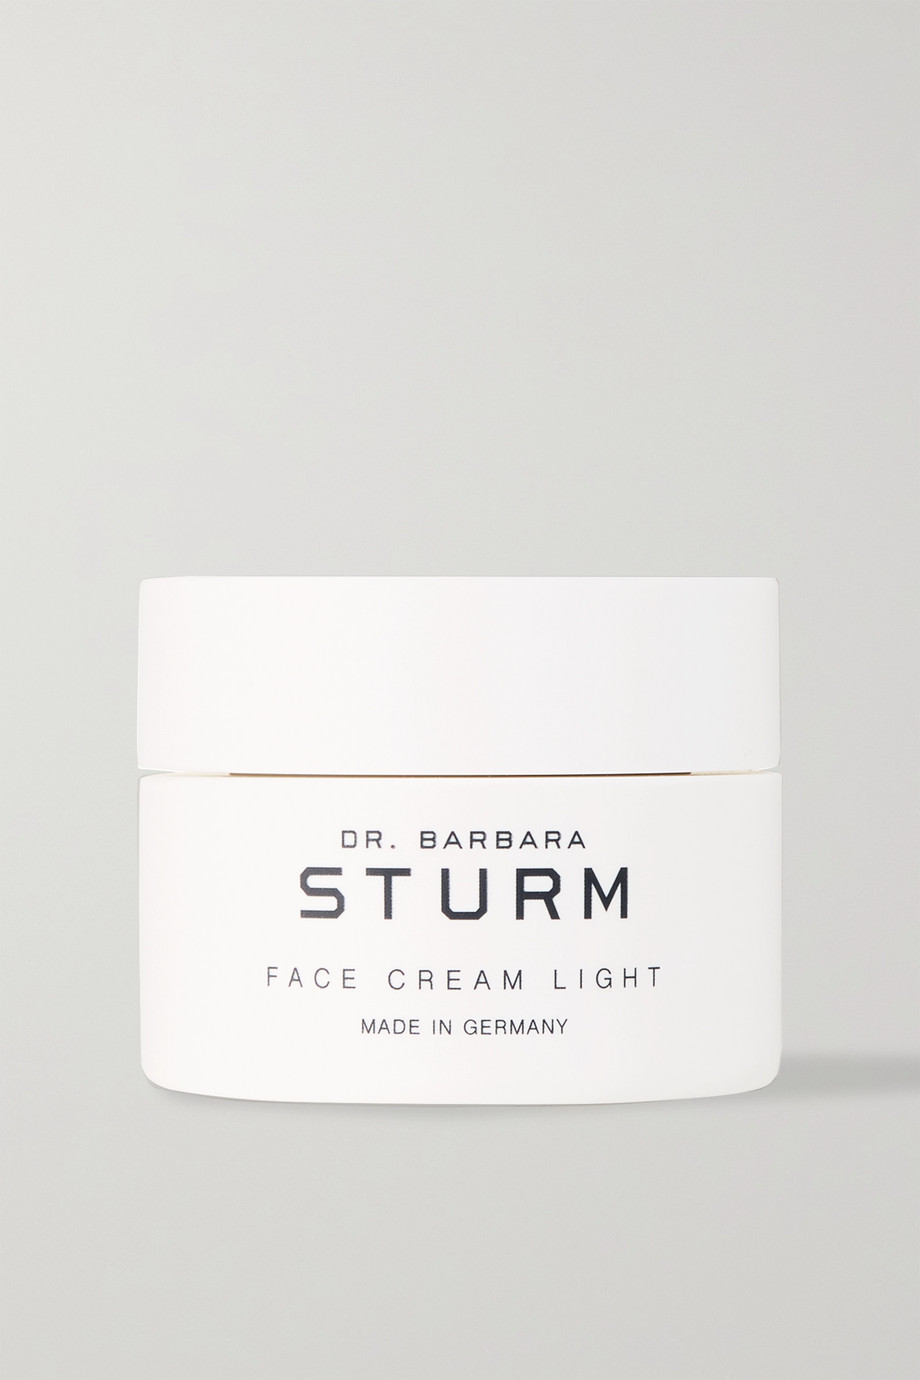 Dr. Barbara Sturm Face Cream Light, 50 ml – Gesichtscreme